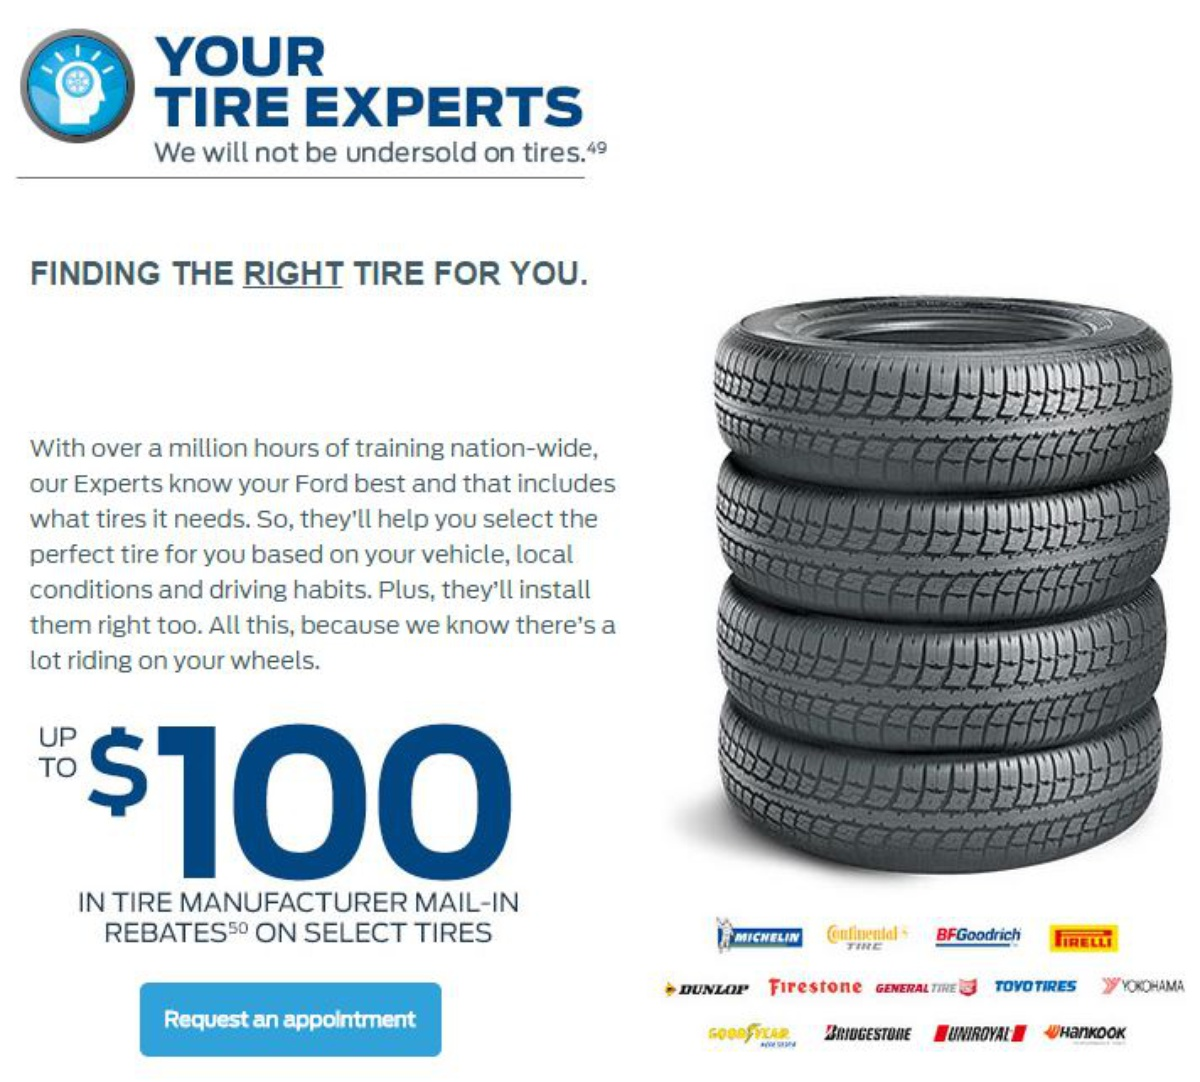 Ford Tire Offer